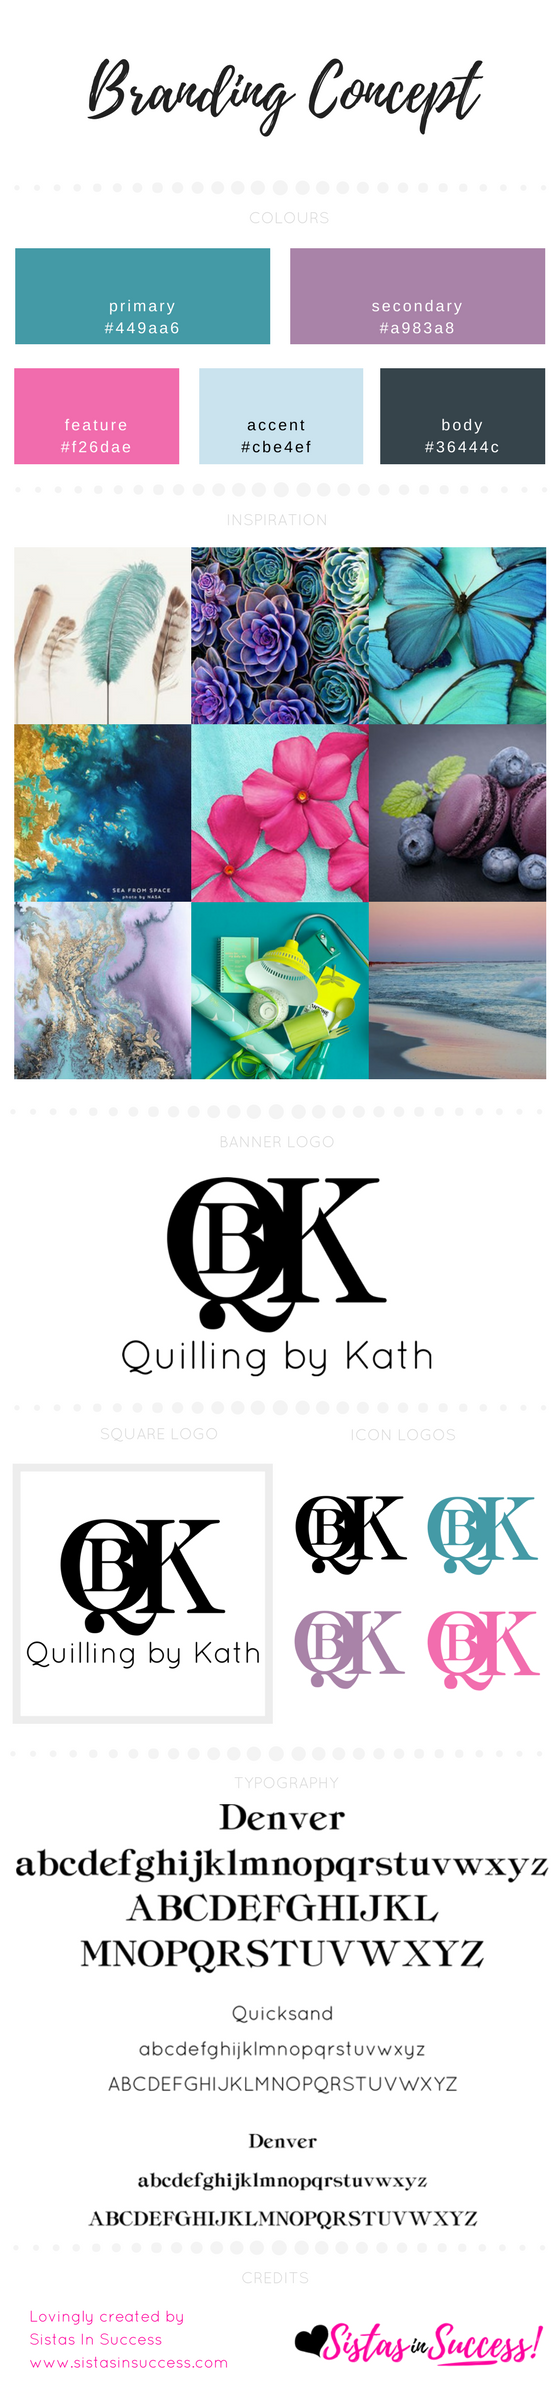 Quilling By Kath Branding Concept V2